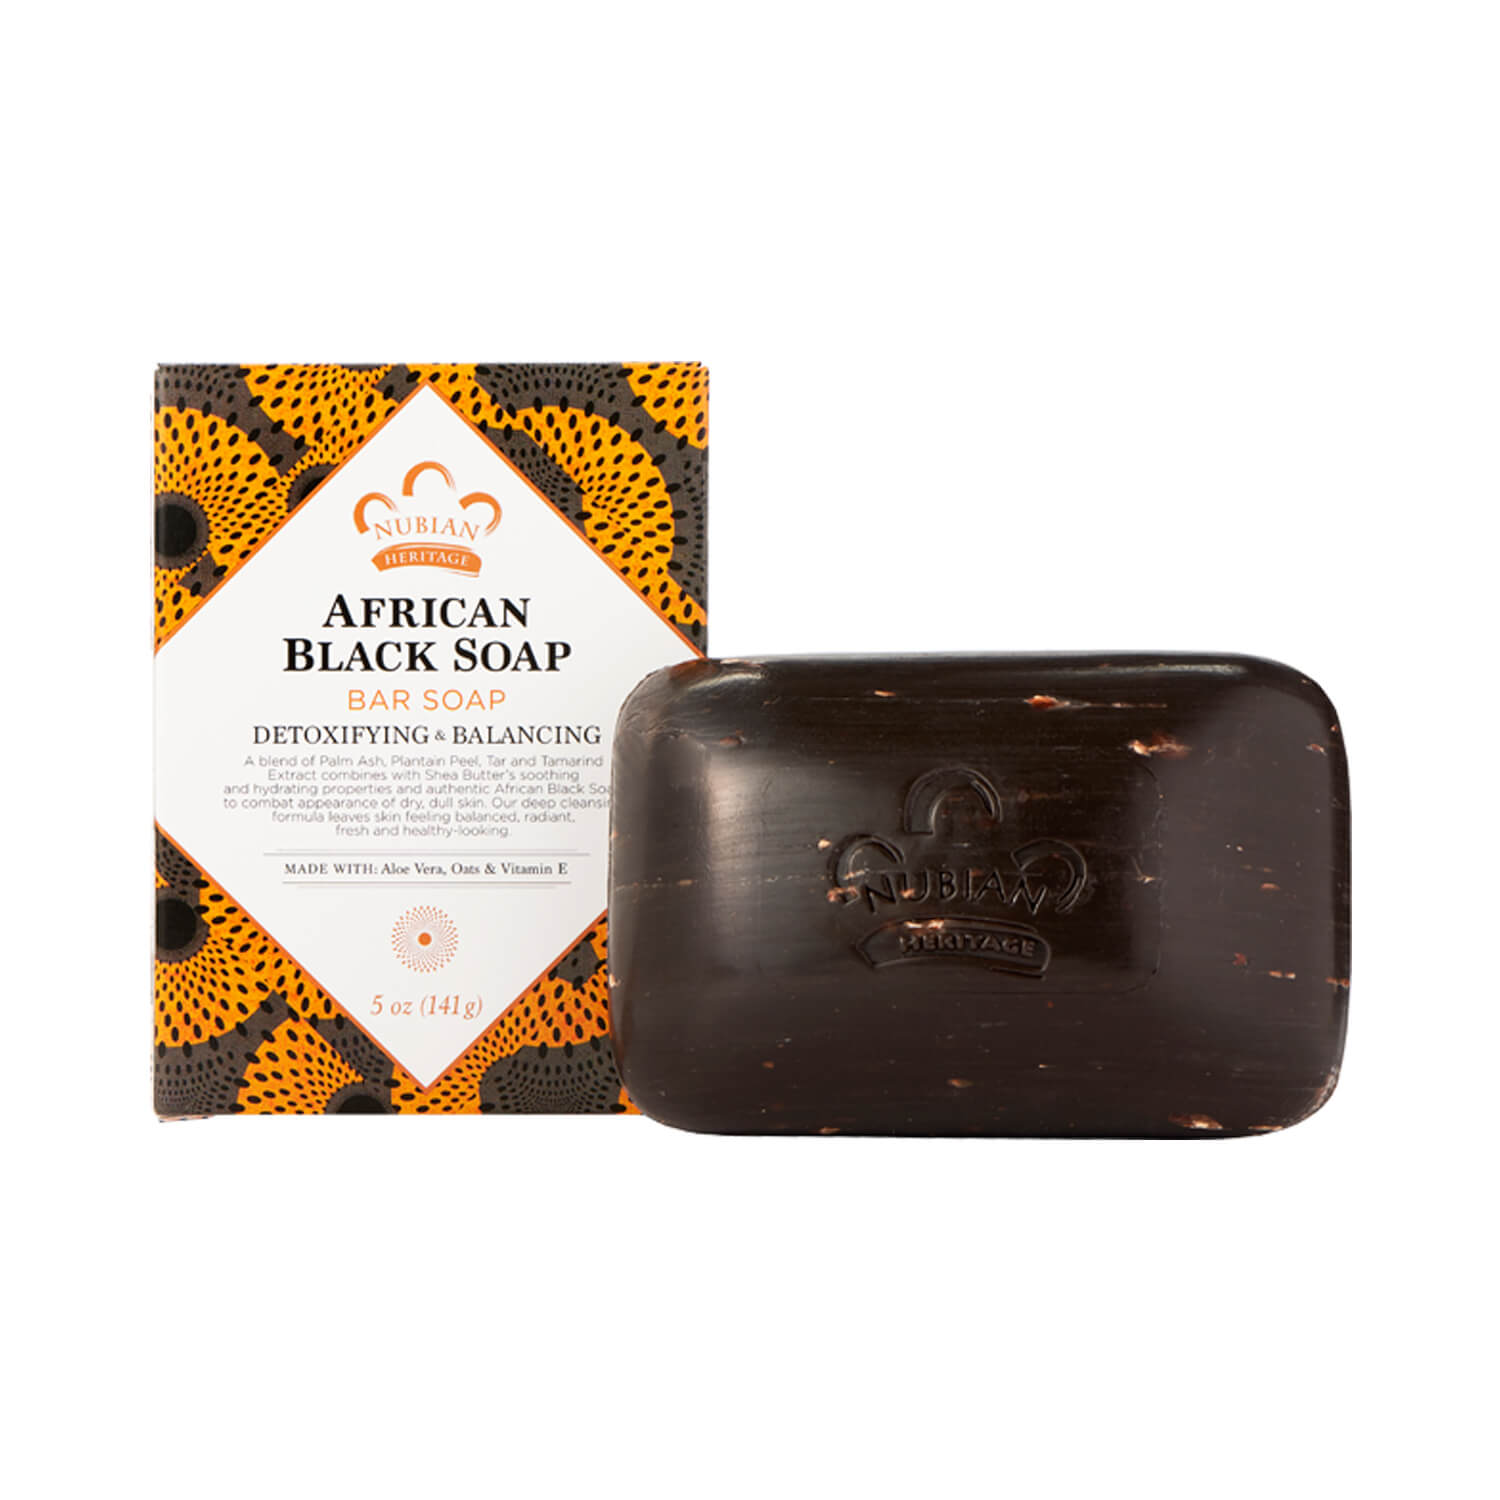 Nubian Heritage African Black Bar Soap 141g